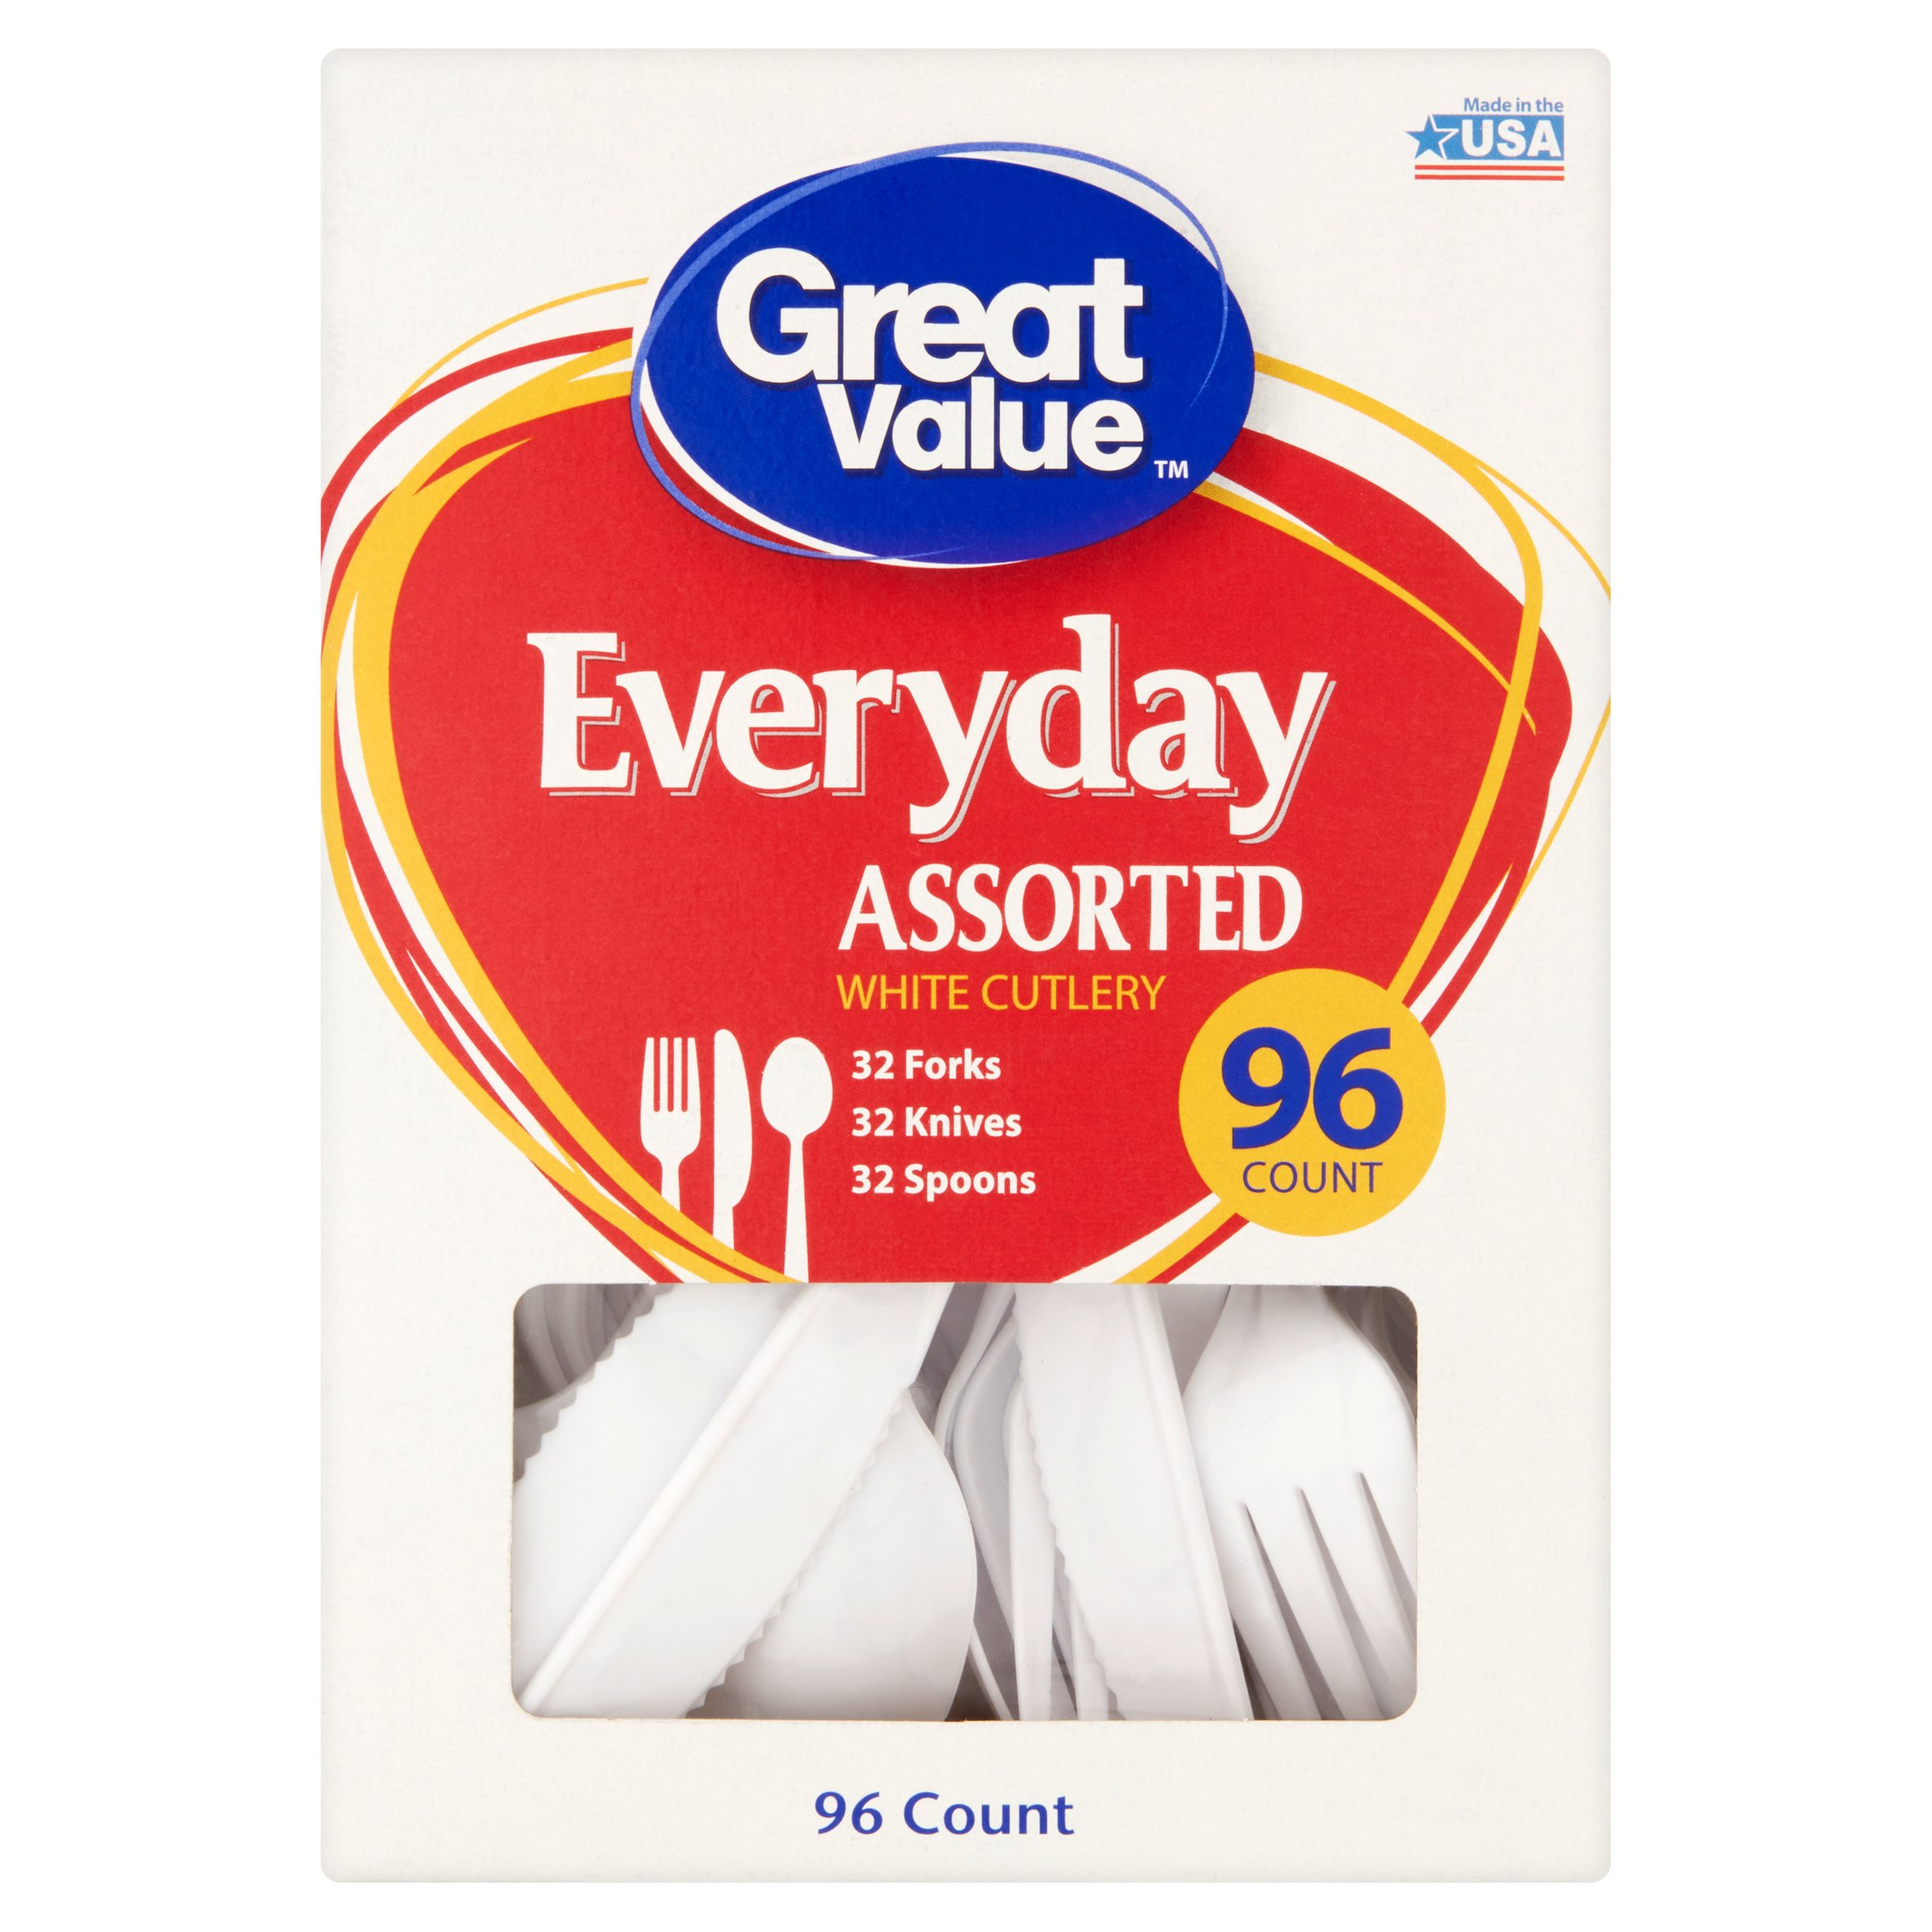 Great Value Everyday Assorted White Cutlery, 96 Count